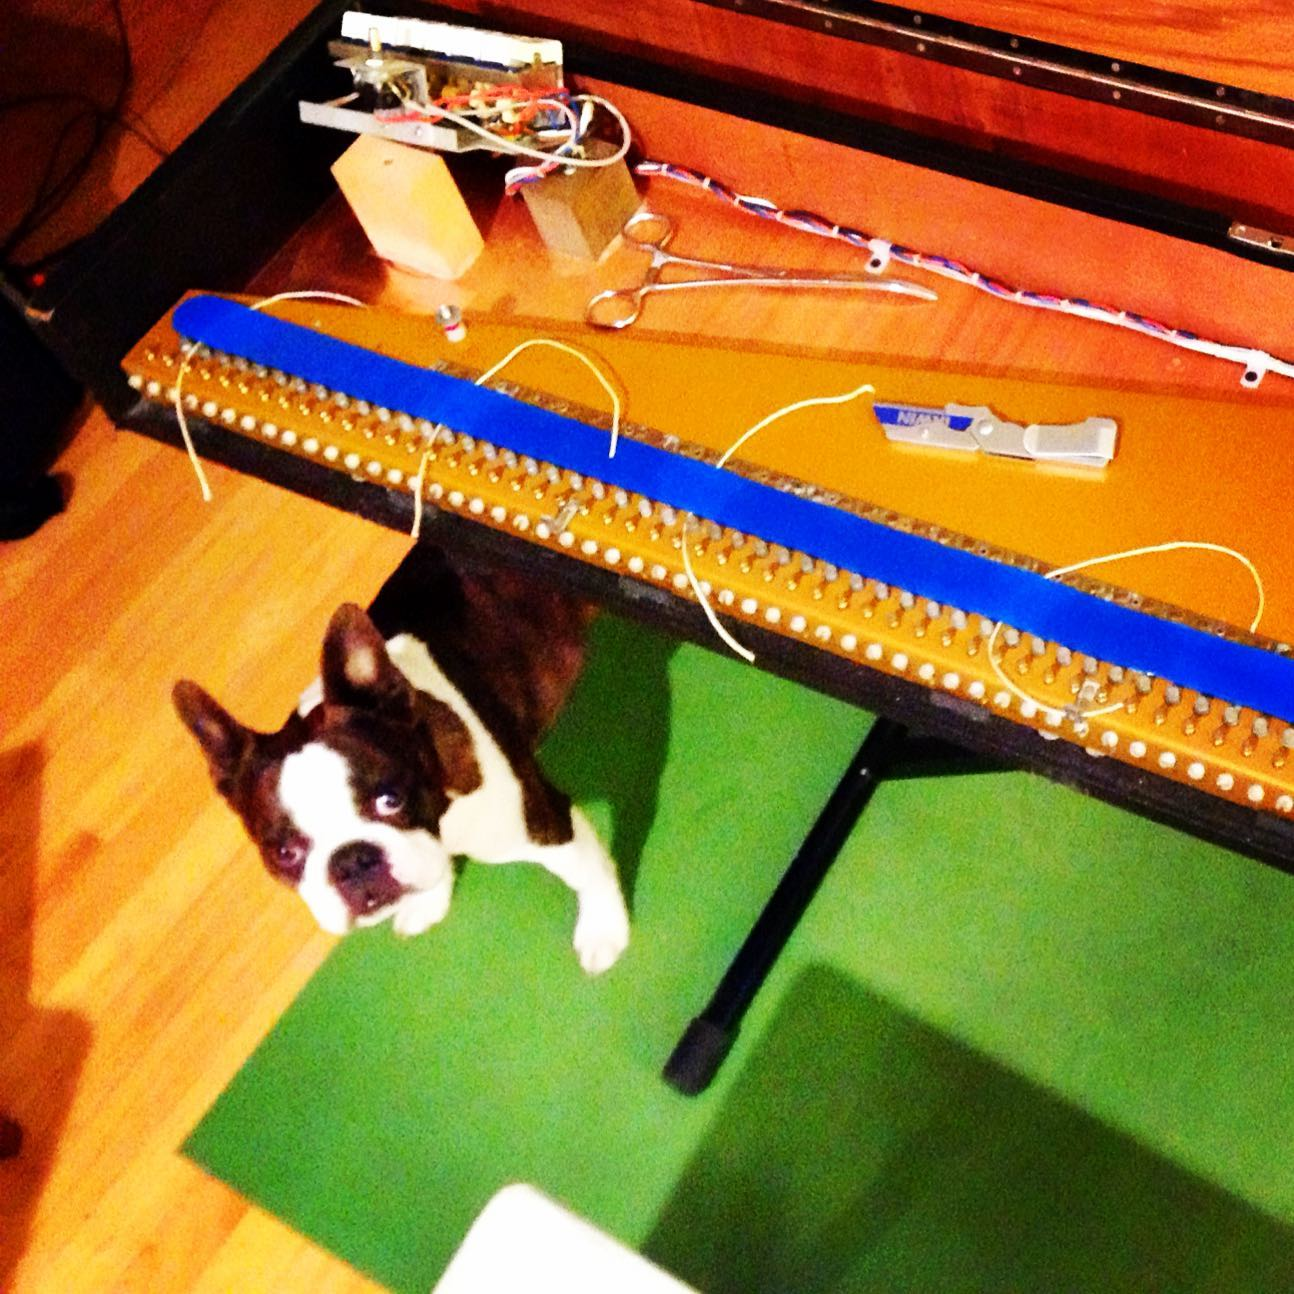 That time Miles helped me restring my Clavinet